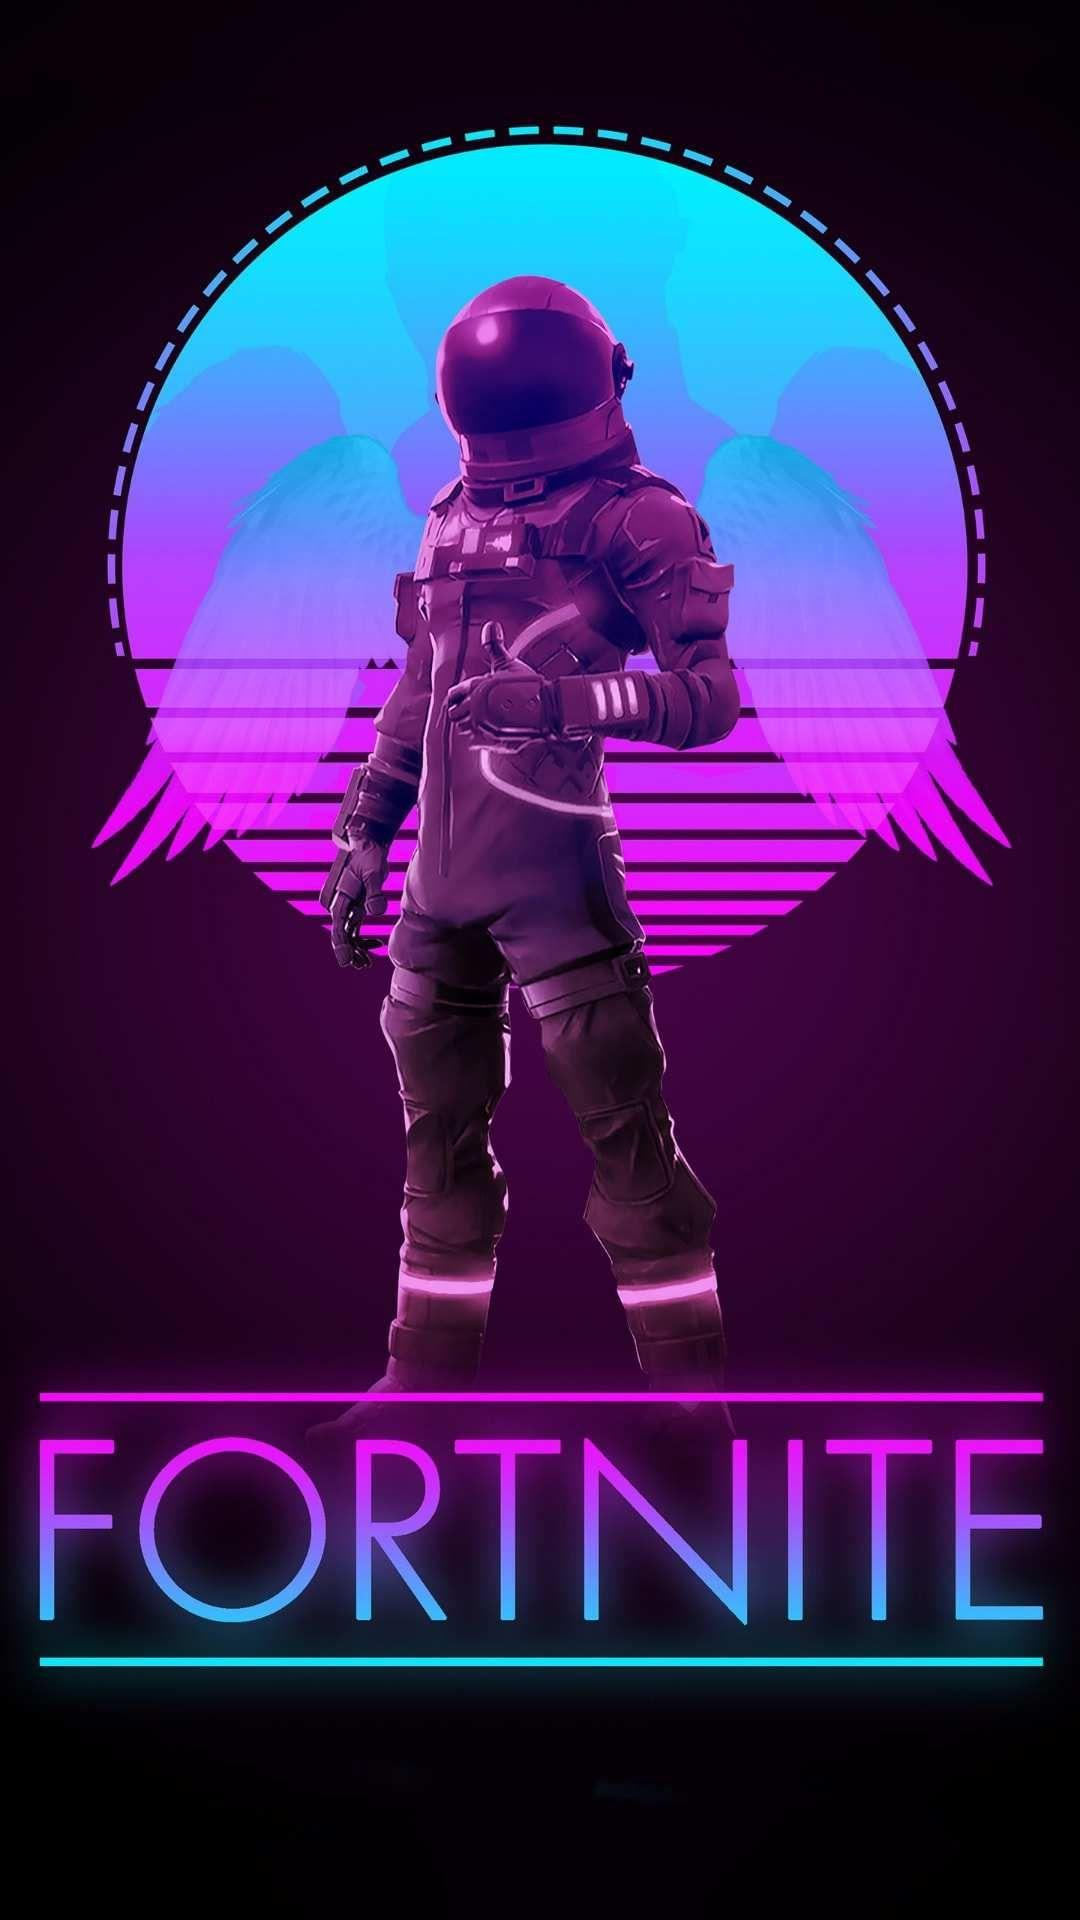 Fortnite Iphone Wallpapers Wallpaper Cave